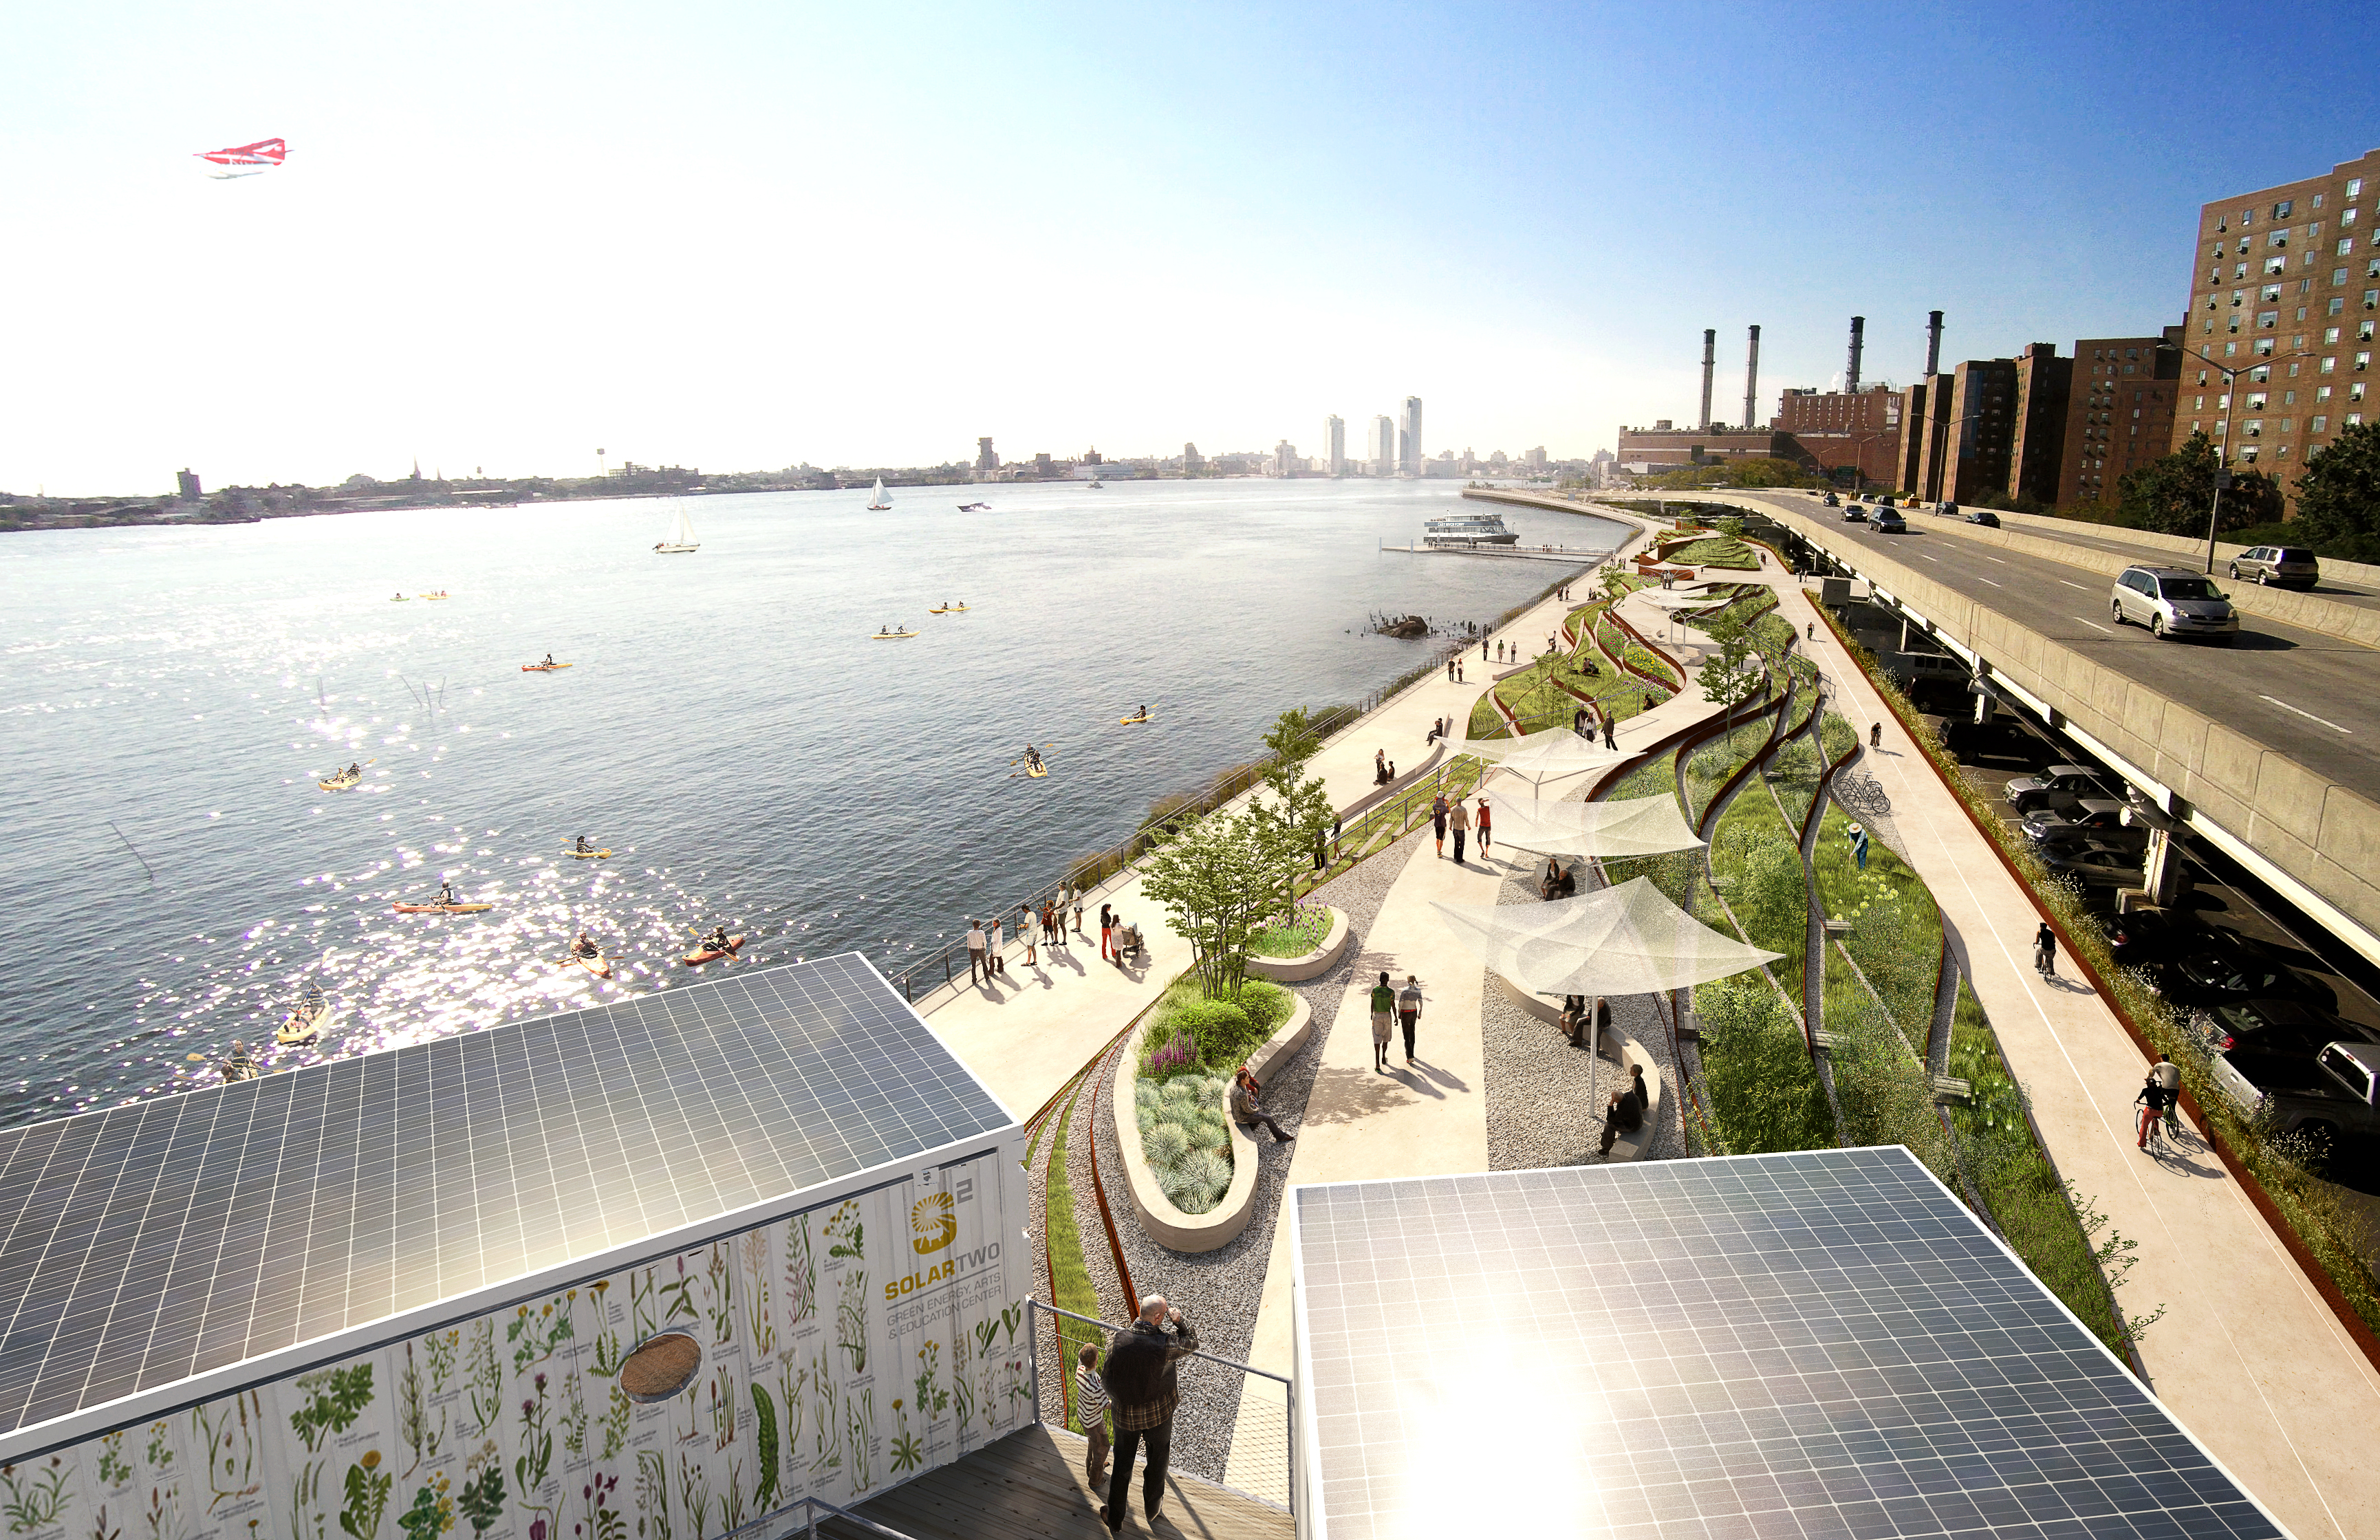 A rendering of the East Side Costal Resiliency Project, aimed at protecting the Lower East Side from storm surges, seen here in sunny weather. (Photo: Rendering Courtesy City of New York)